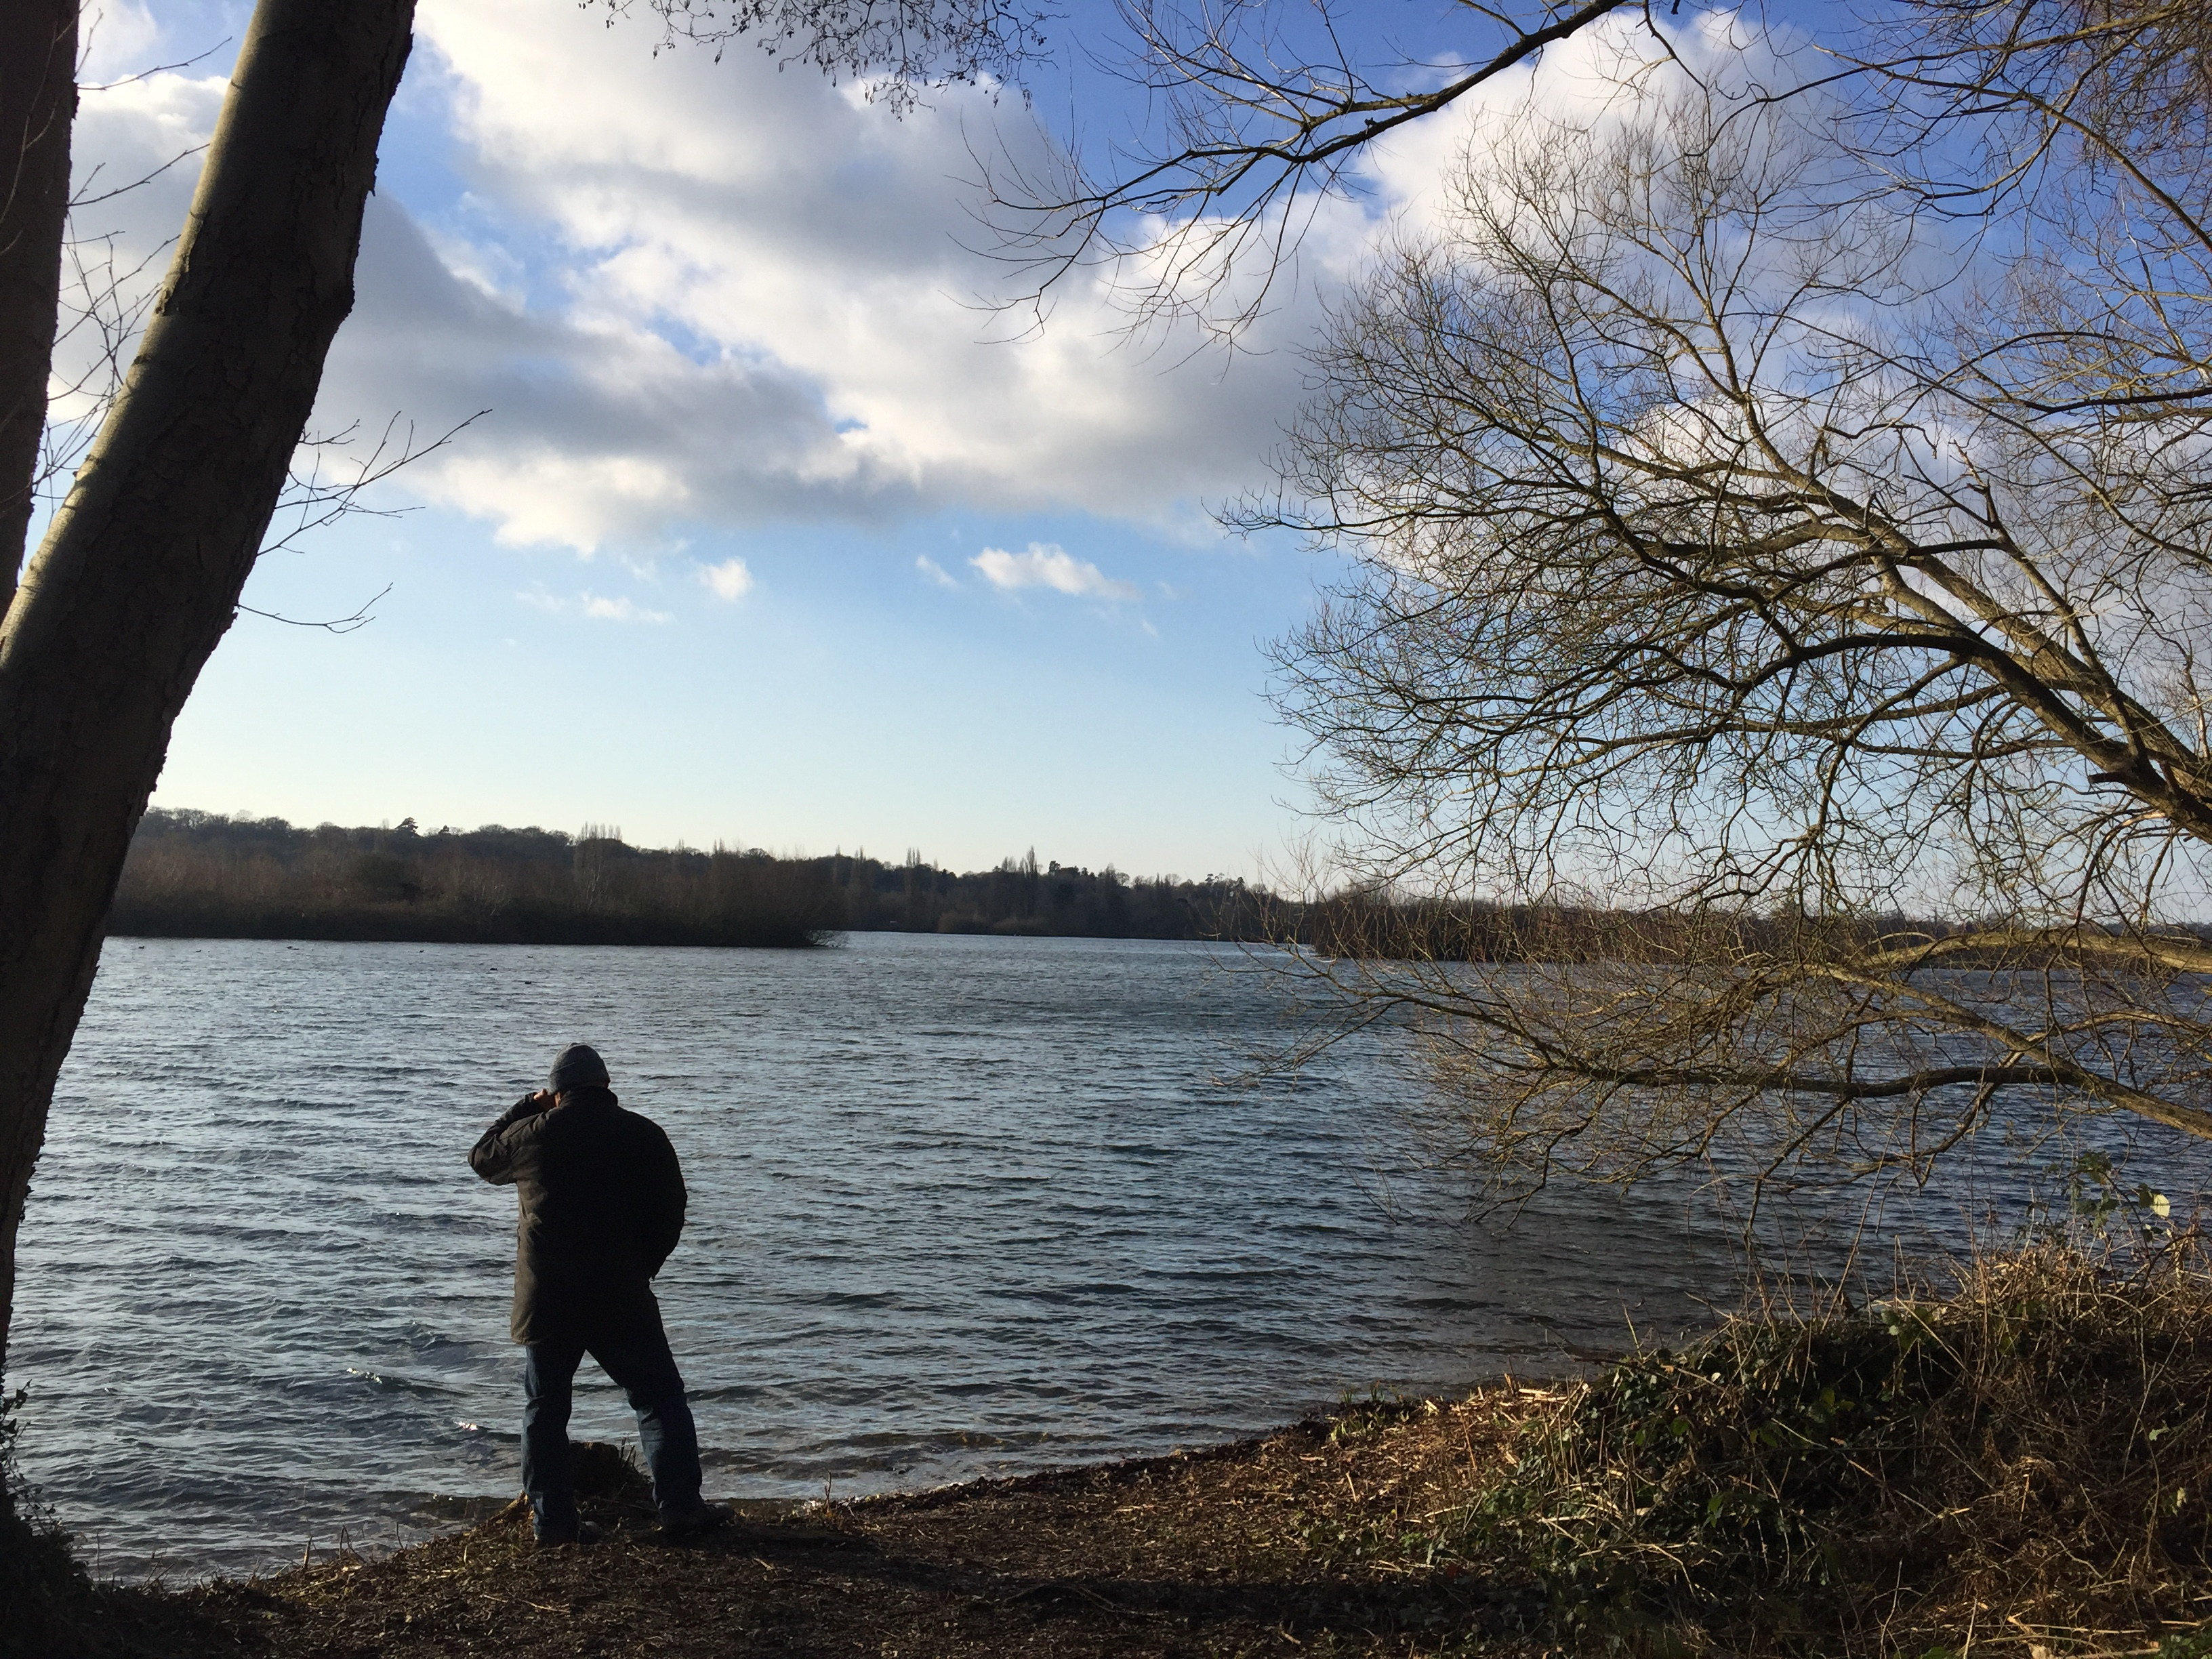 Angling at Broadwater